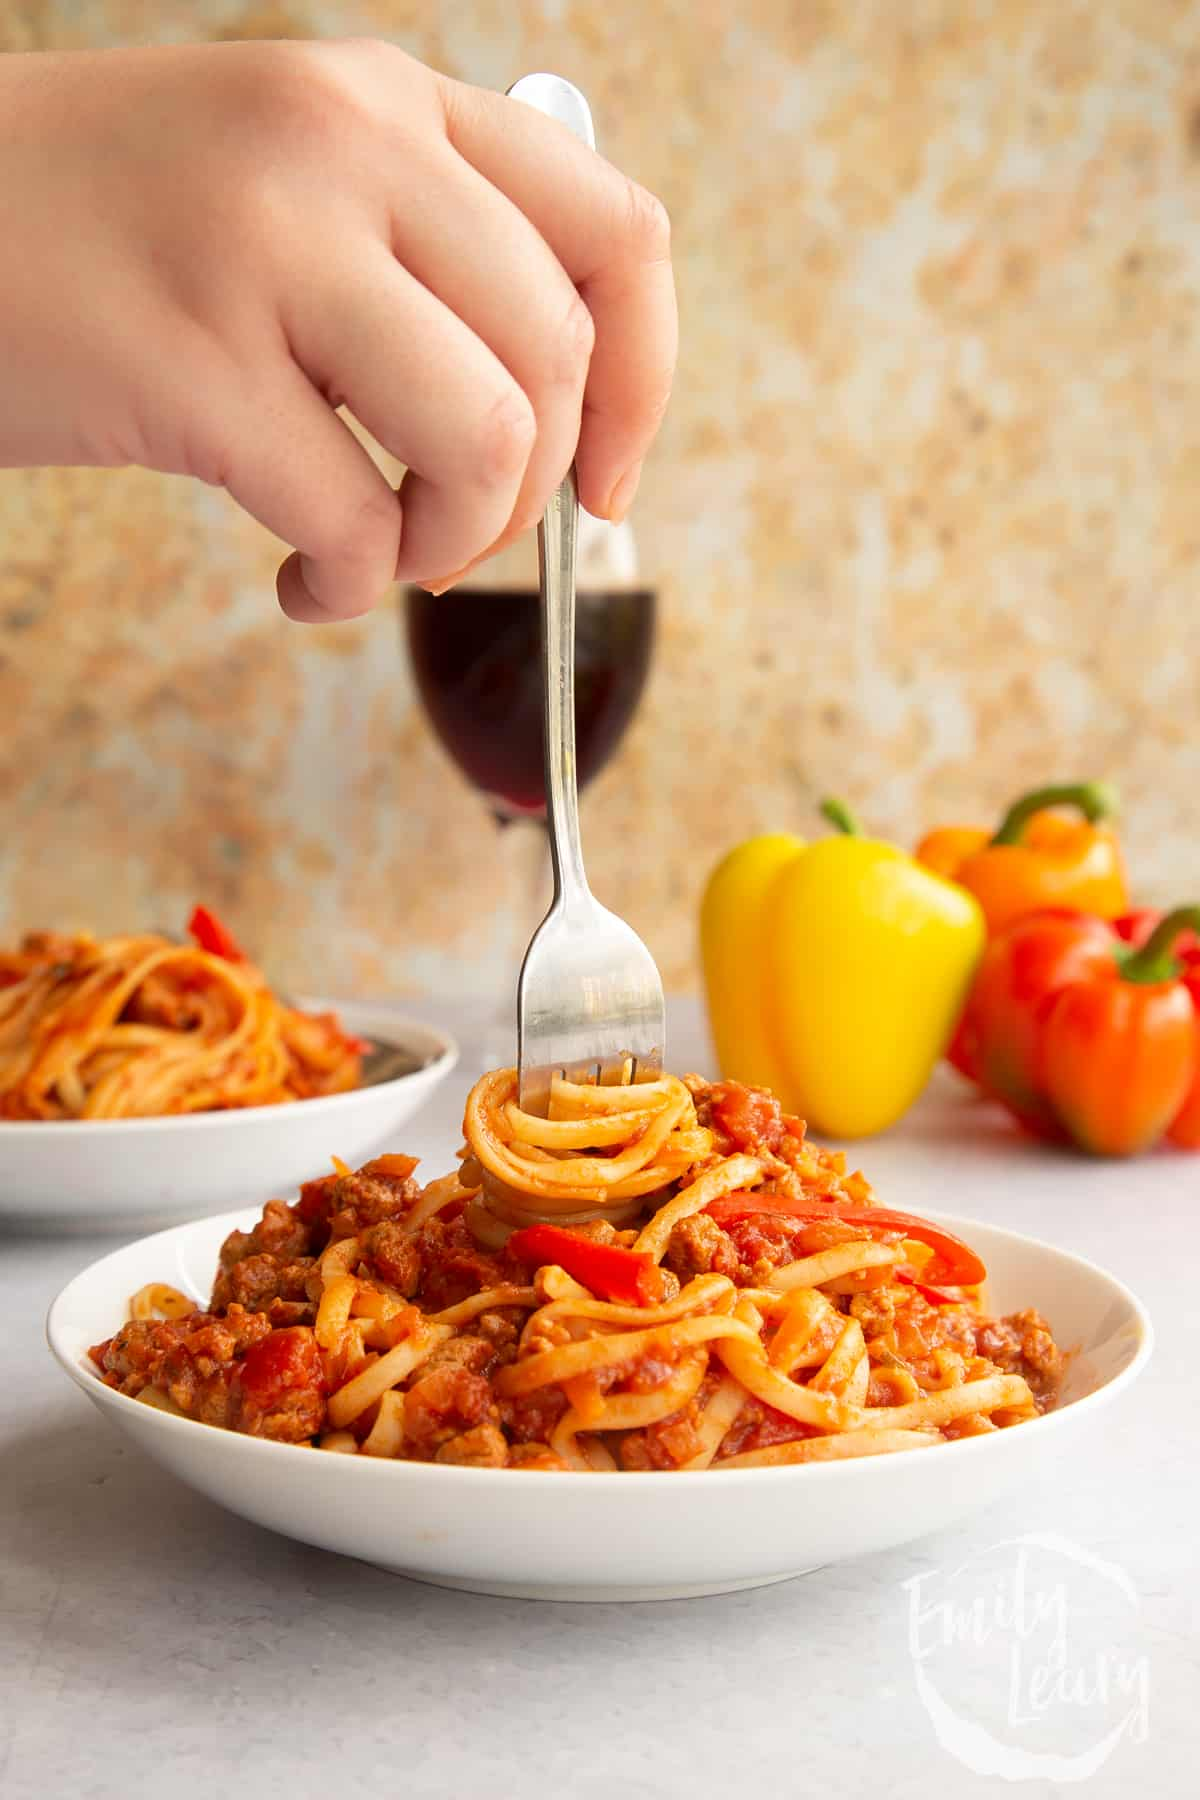 One pot vegan bolognese in a shallow white bowl. A hand holds a fork, twisting spaghetti in the bowl.